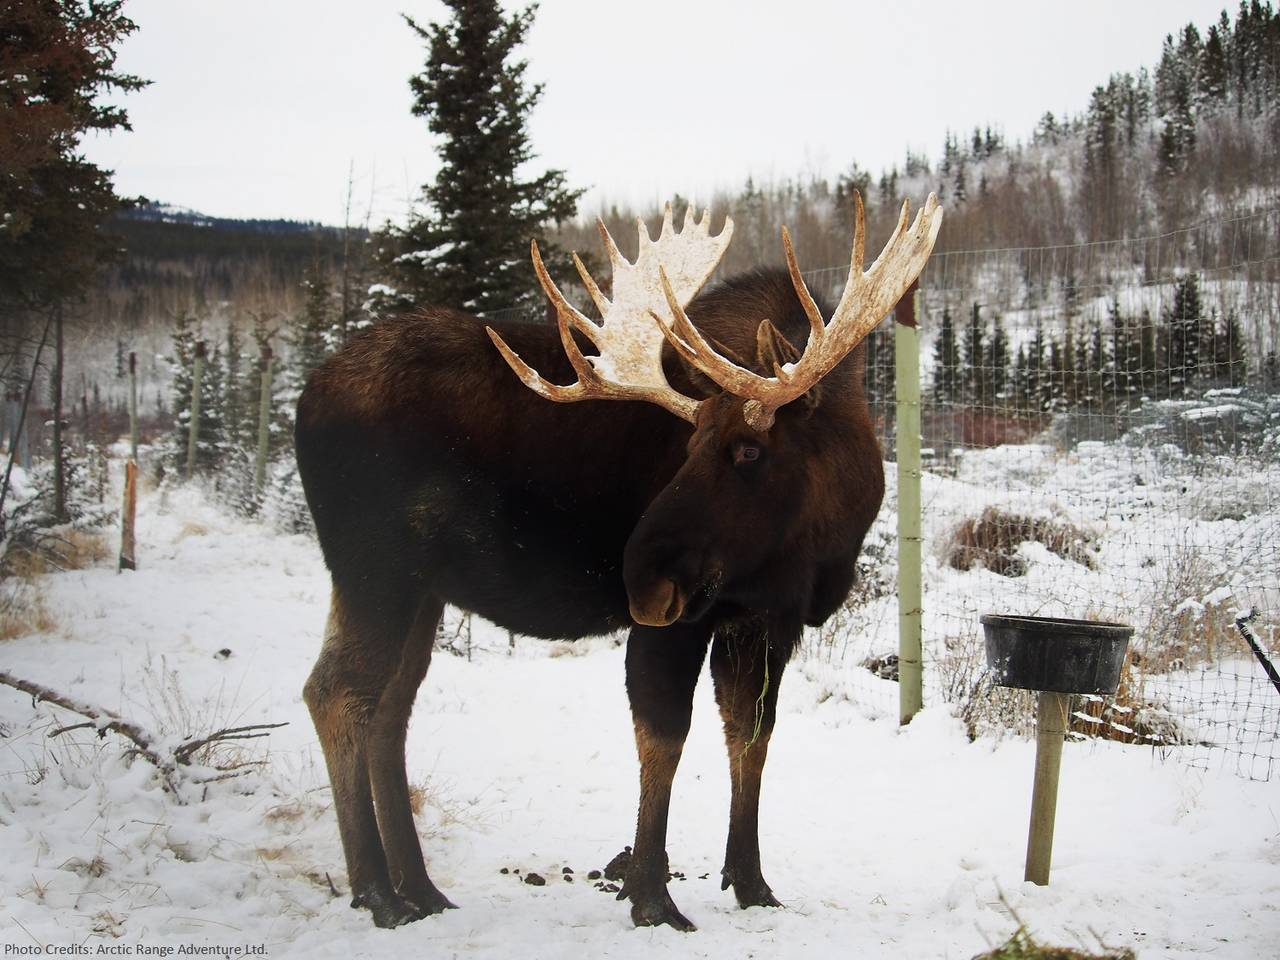 We have more moose in the Yukon than people!